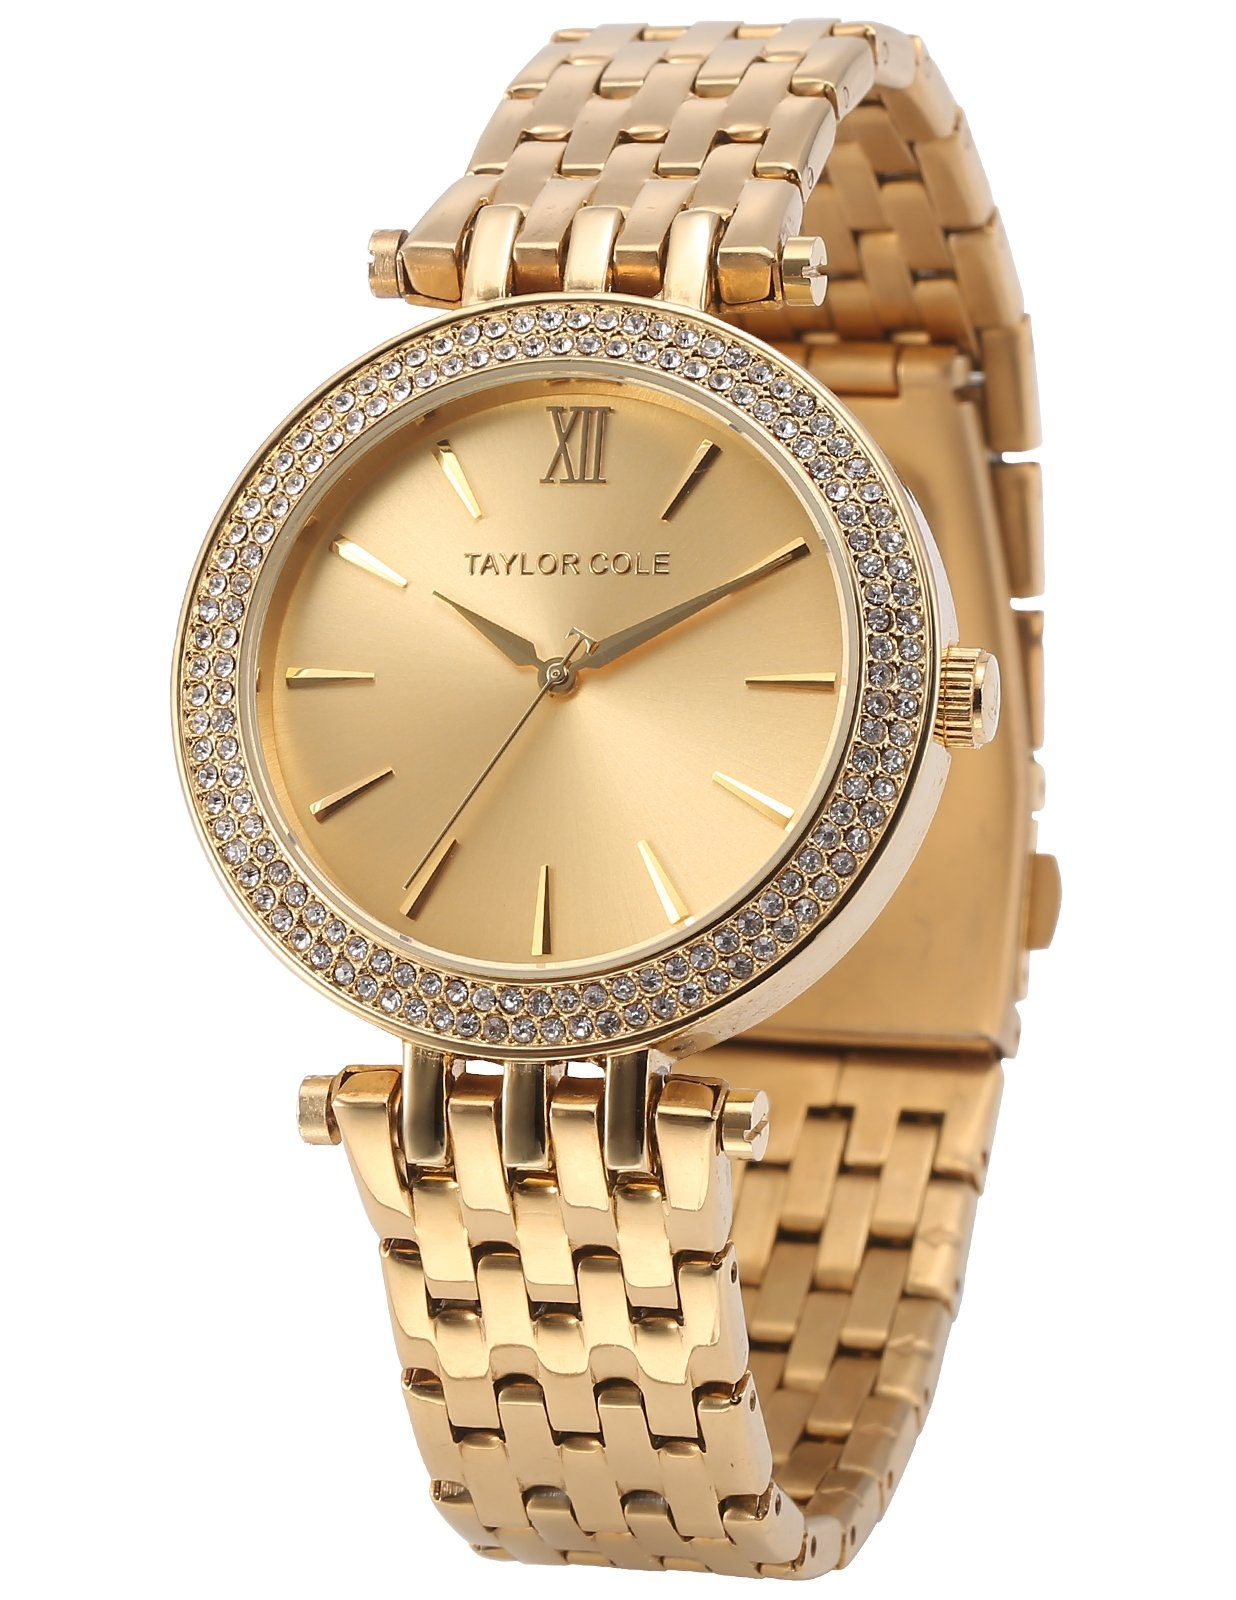 Women Simple Bling Bracelet Watch, Taylor Cole Aglaia Ladies' Elegant Gold Stainless Steel Band Simple Quartz Analog Dial Wrist Watch TC001, Holiday Gift for Women, Wedding